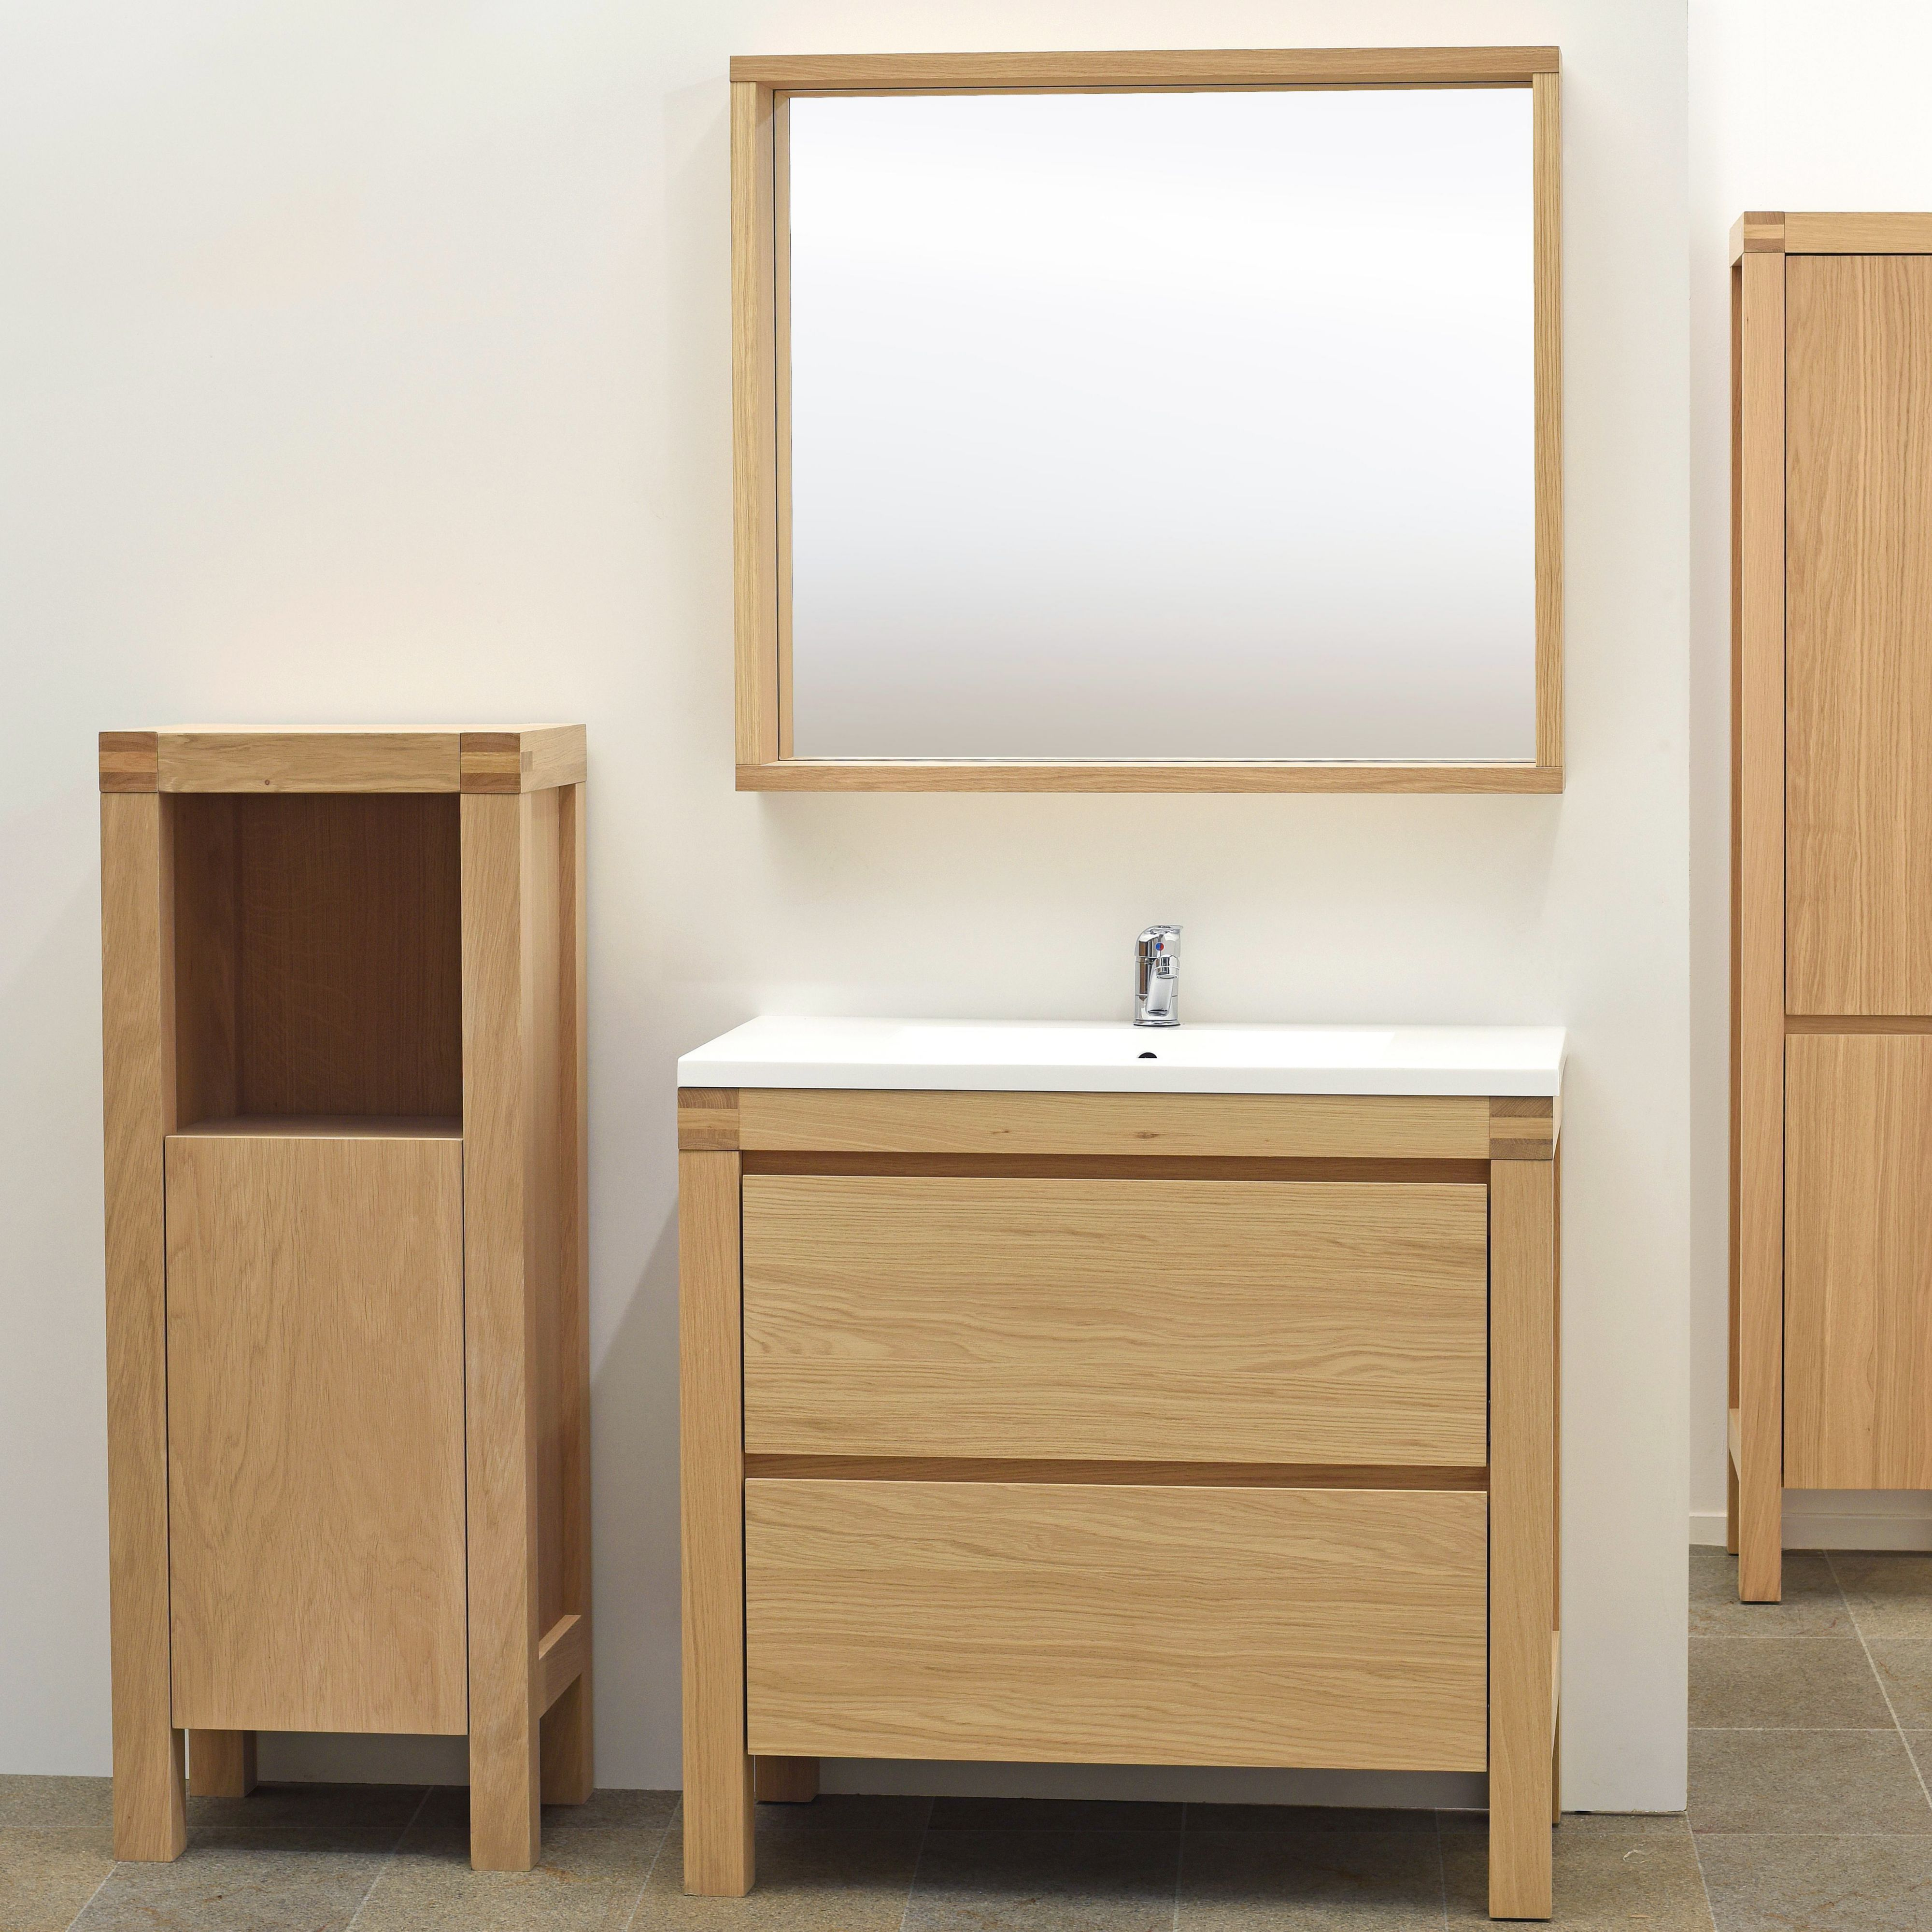 Cozy Erwan Freestanding Bathroom Furniture freestanding bathroom furniture